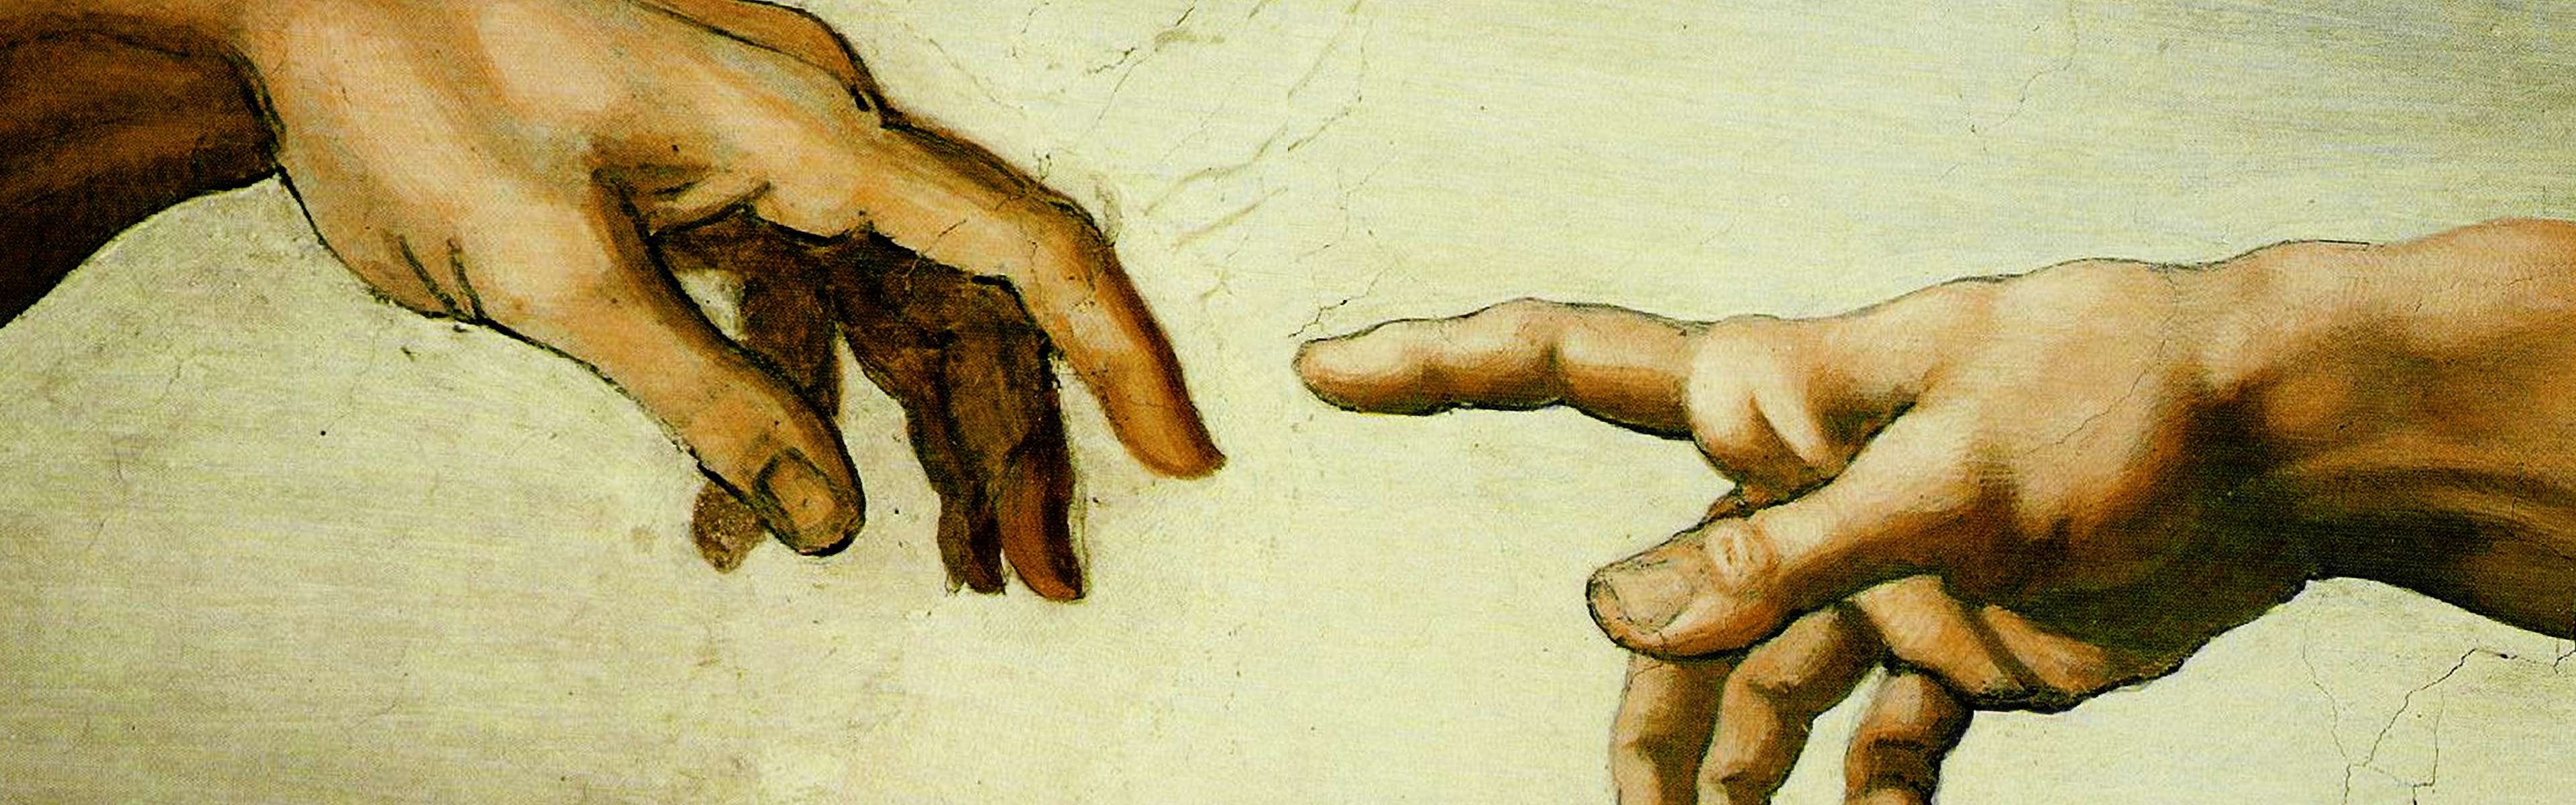 paintings-hands-Michelangelo-The-Creation-of-Adam-_51179-42 ...